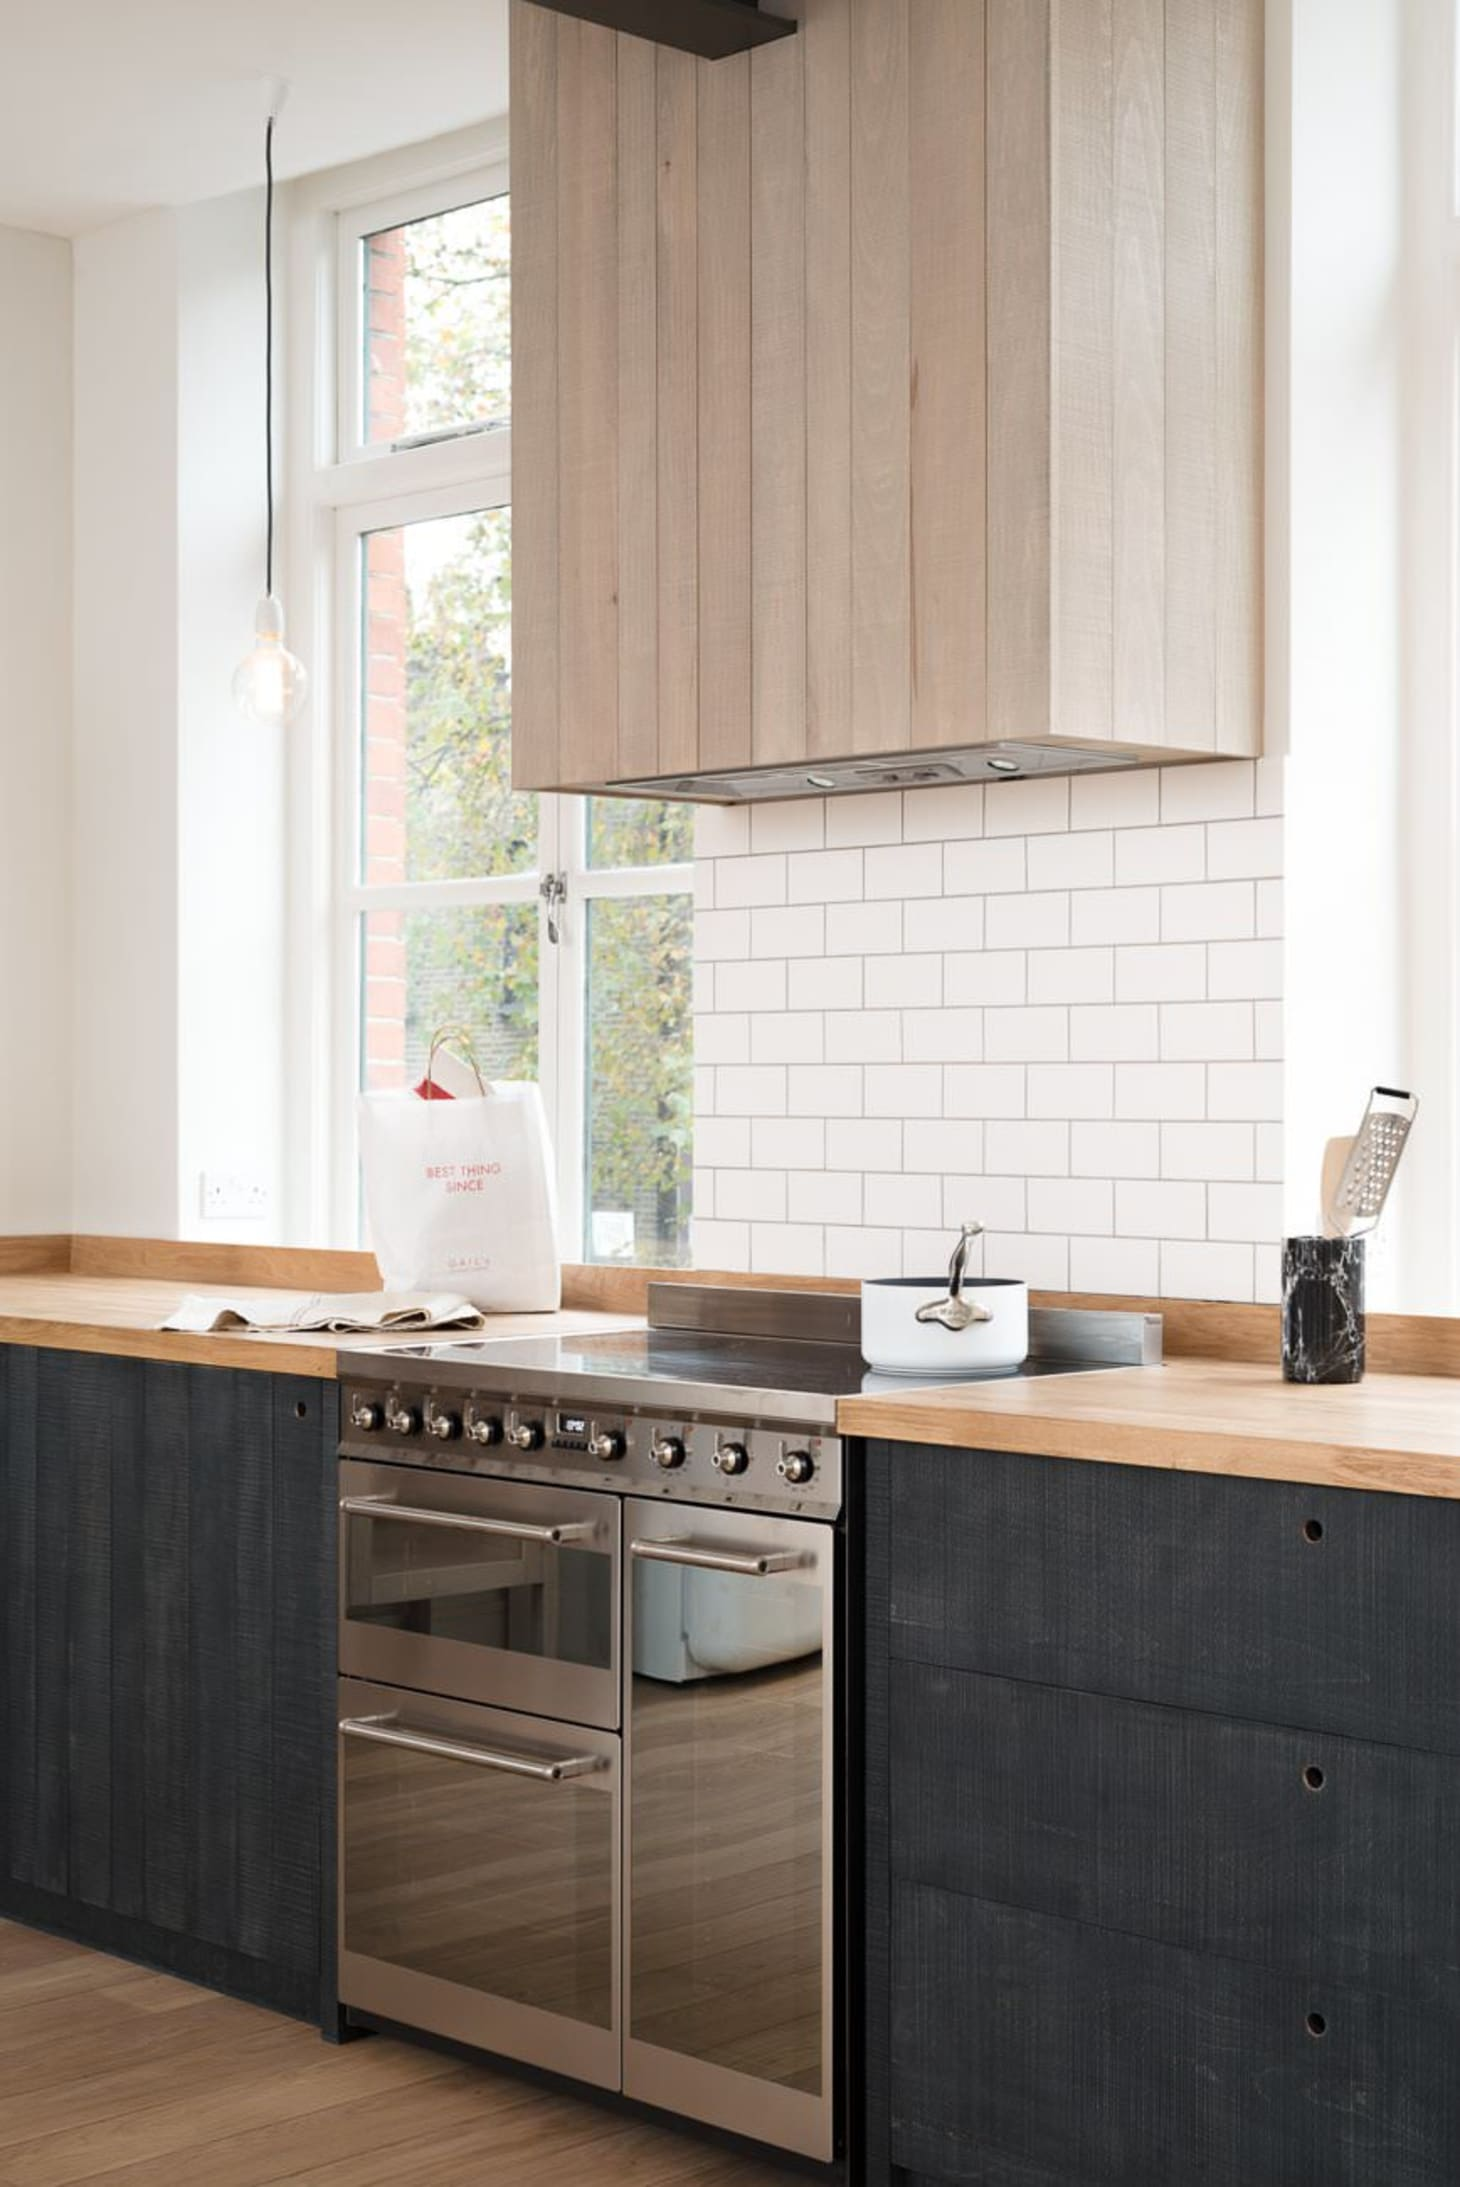 Beadboard Kitchen Cabinet Doors That Work With Any Style ...